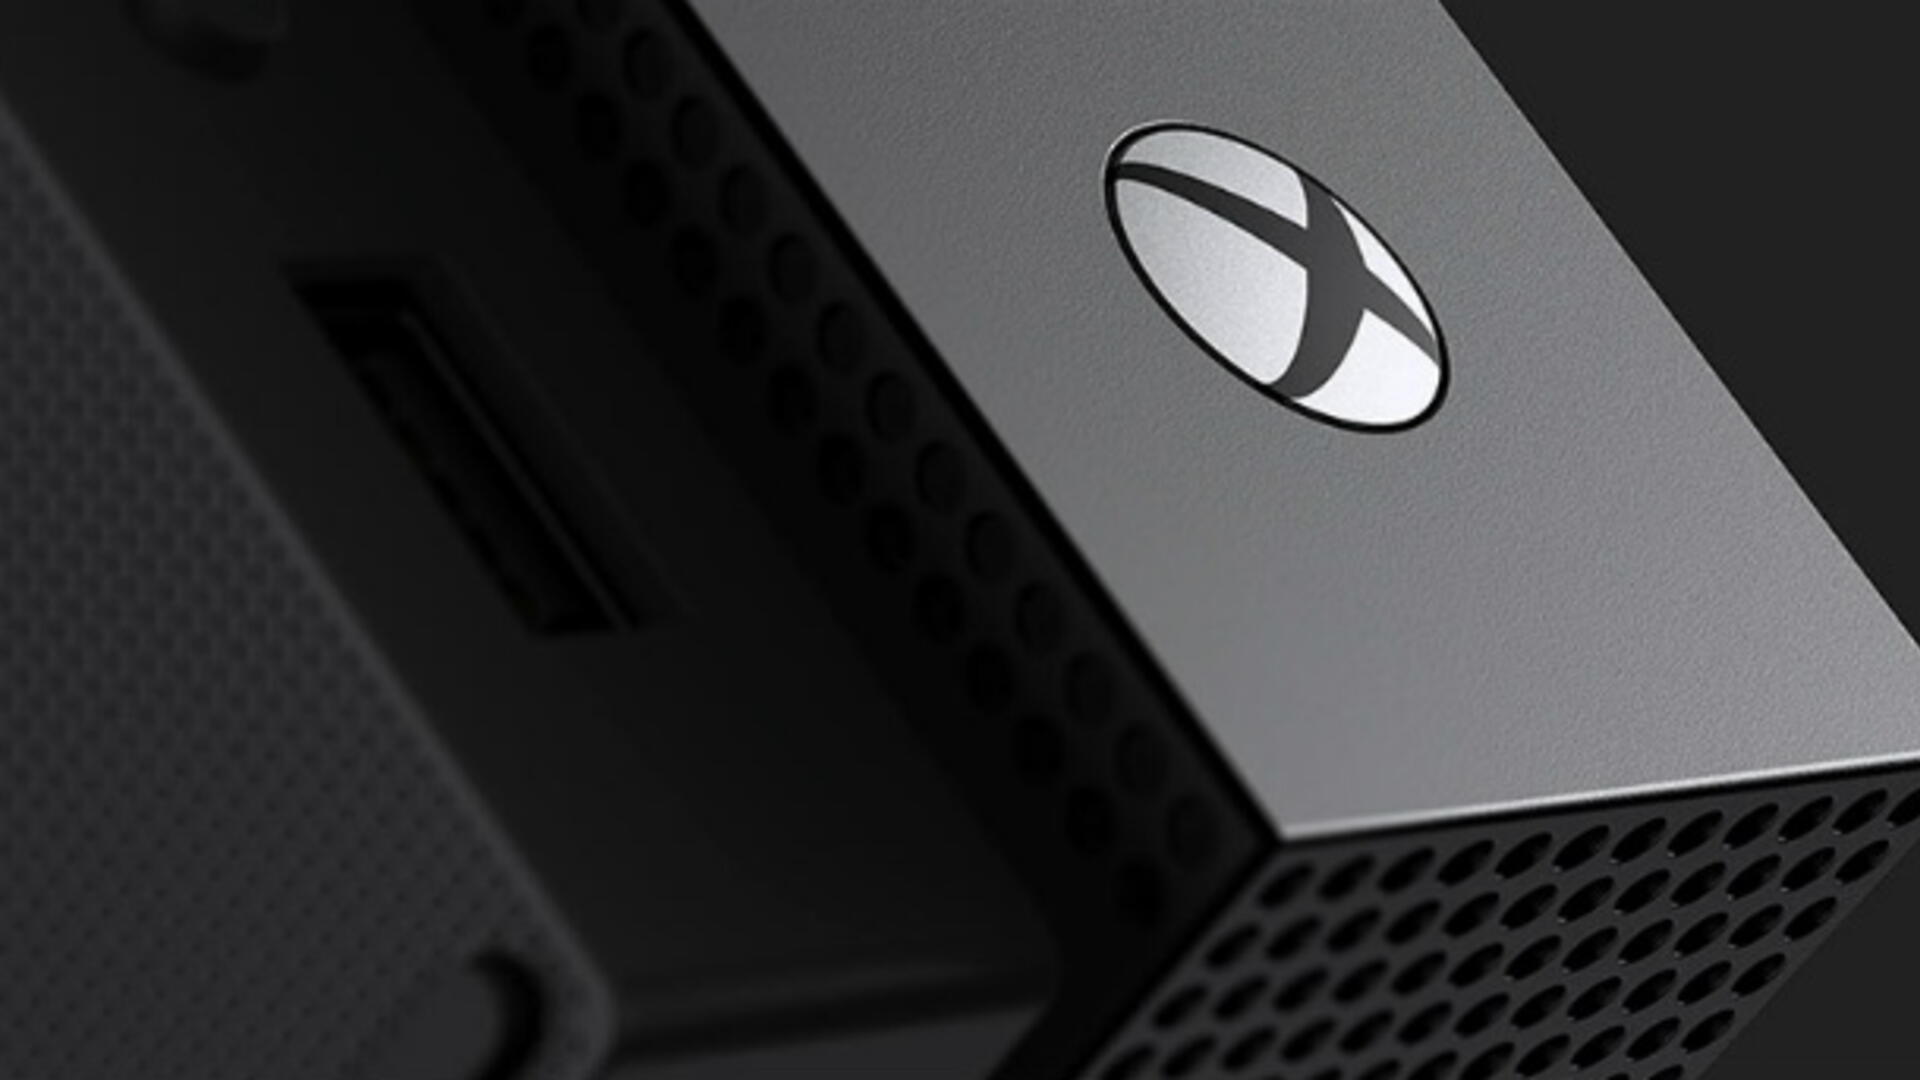 Call of Duty, Assassin's Creed, and Hundreds More Discounted in the Xbox Spring Sale